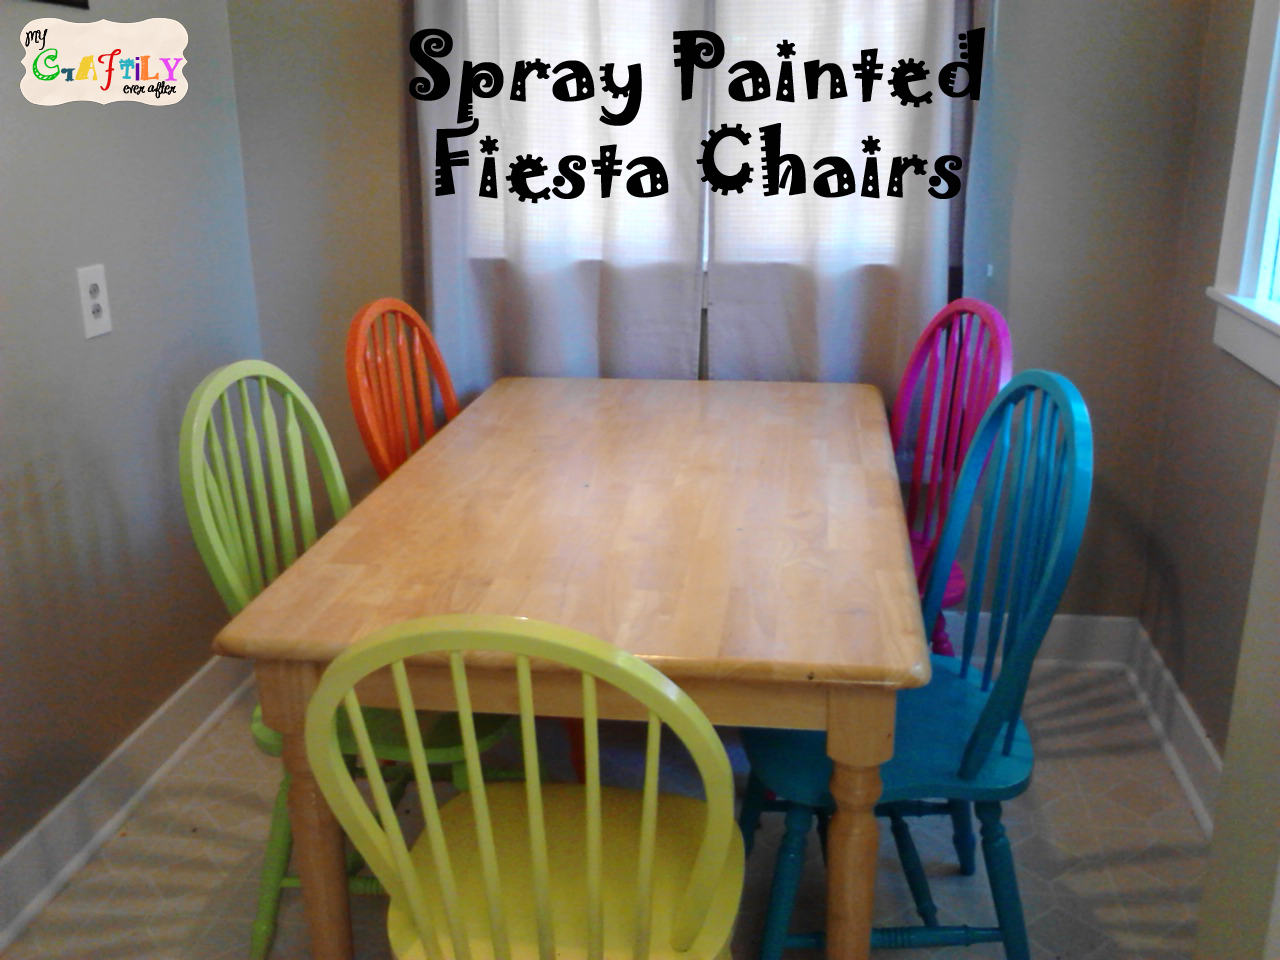 Spray Painted Fiesta Chairs for the Dining Room Table - My Craftily ...